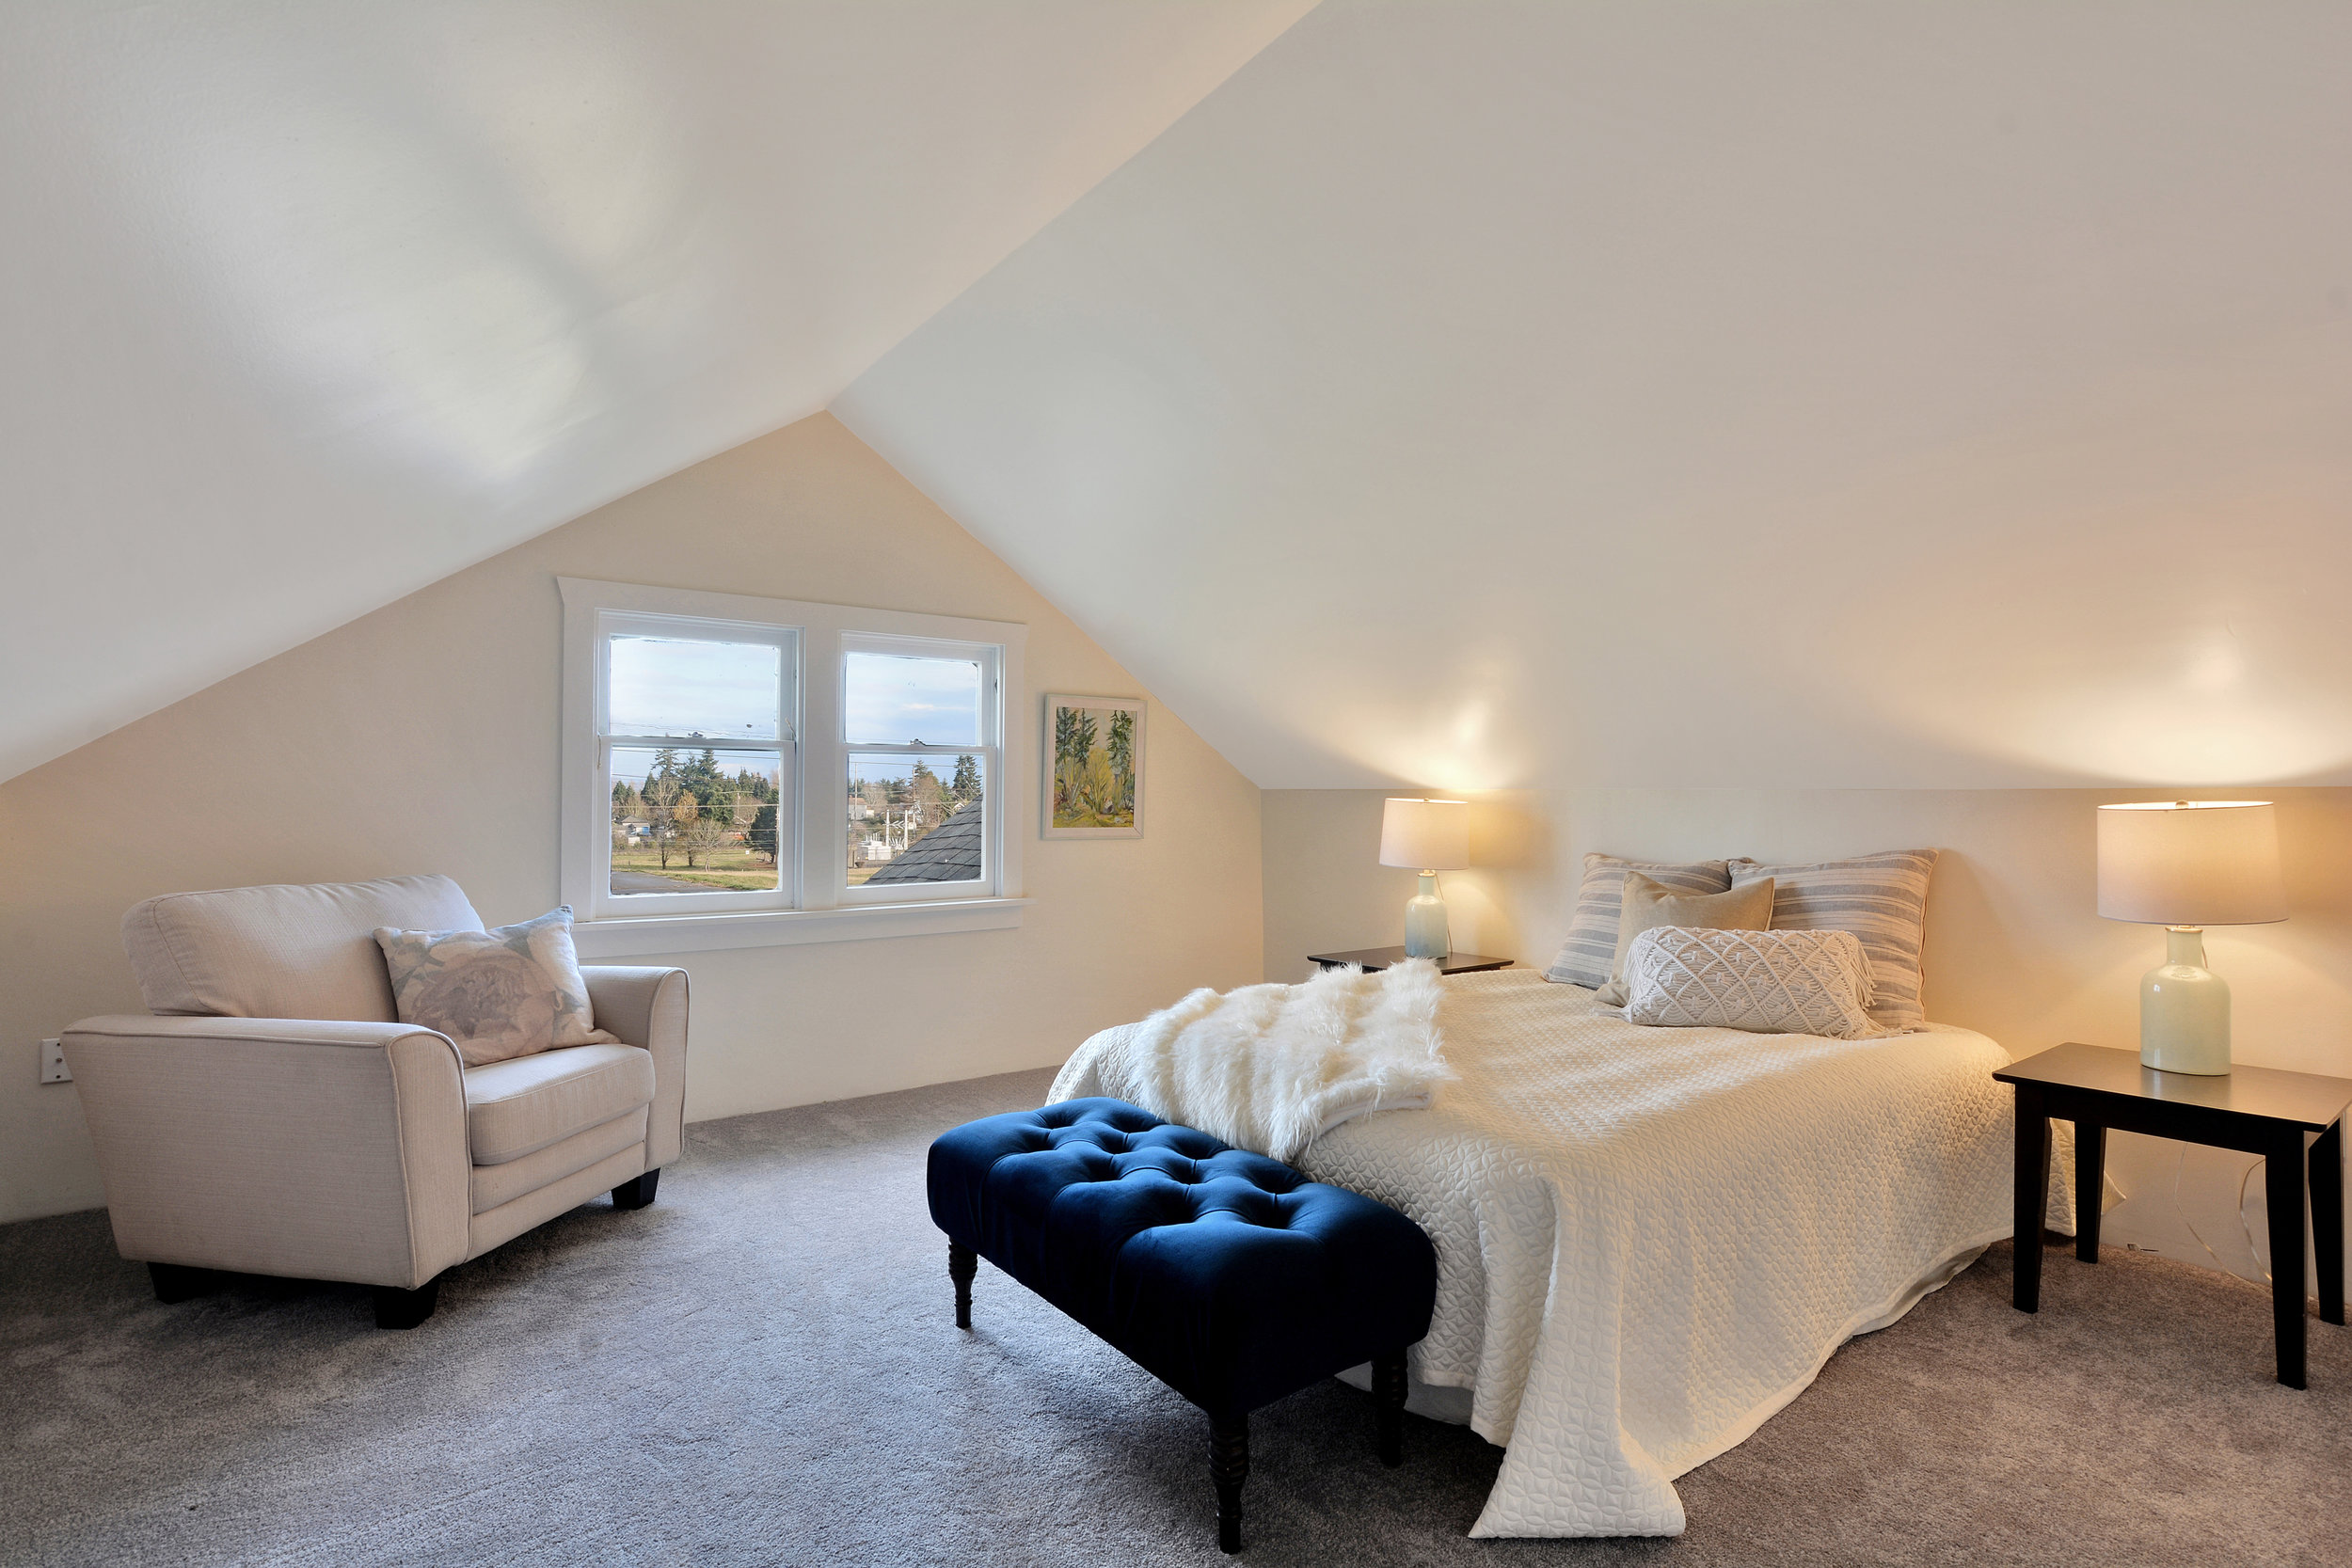 This third bedroom, located upstairs, is cozy with brand new carpet, sloped ceilings, and windows facing east for the sunrise.